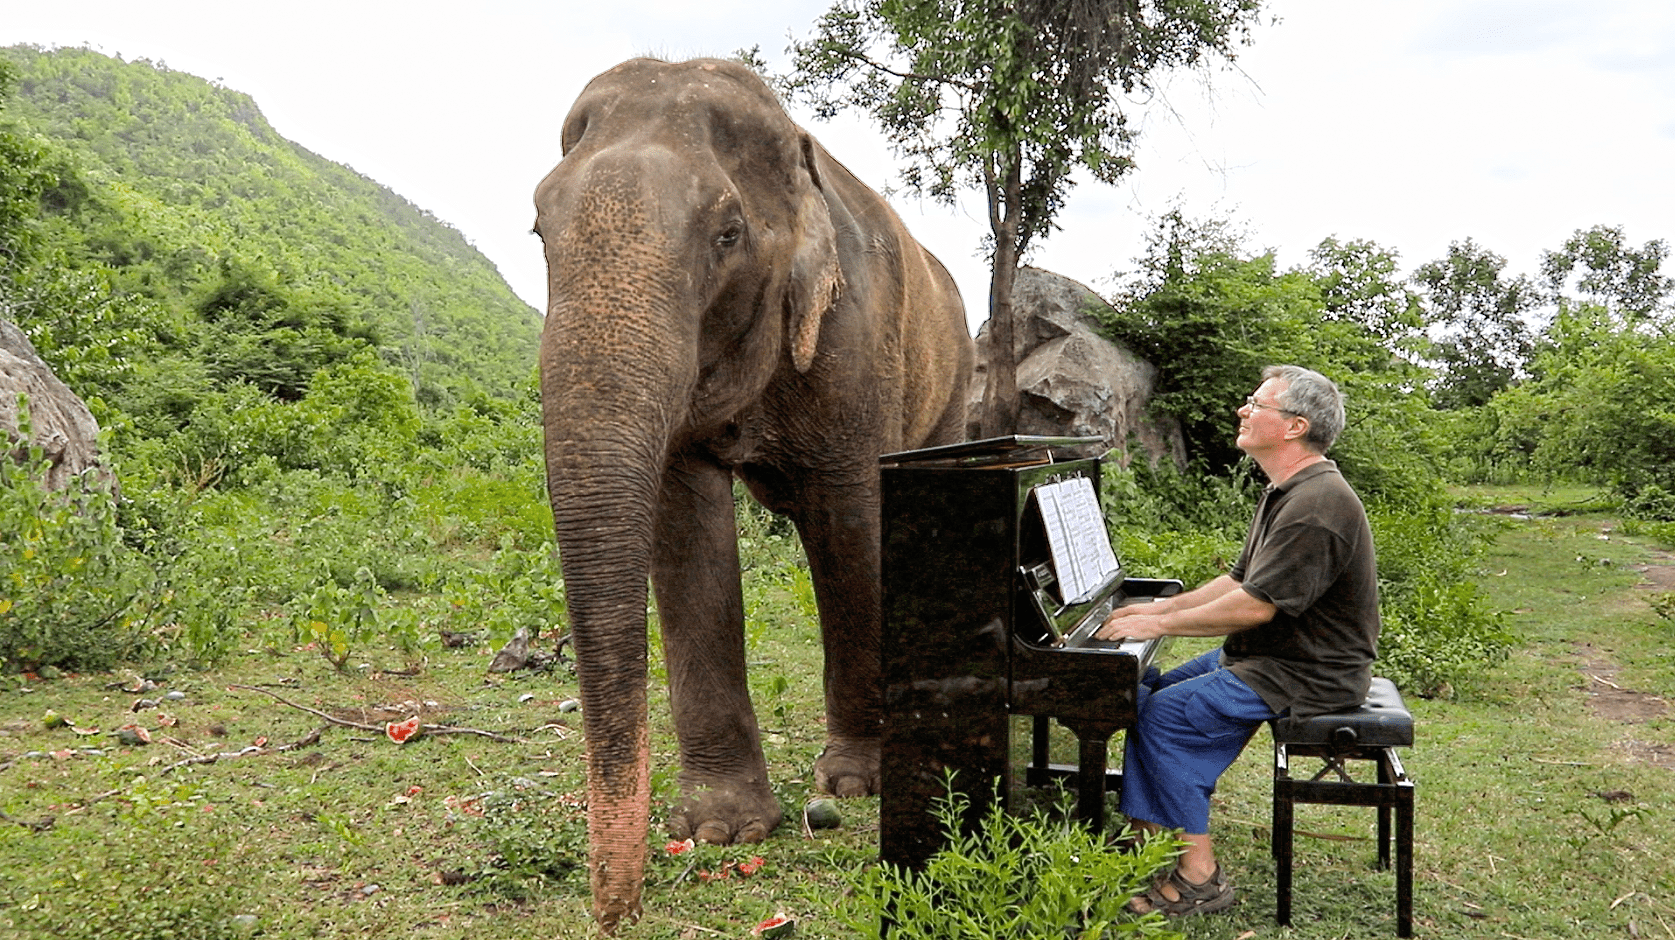 Bull elephant Romsai is enraptured with Barton's music.